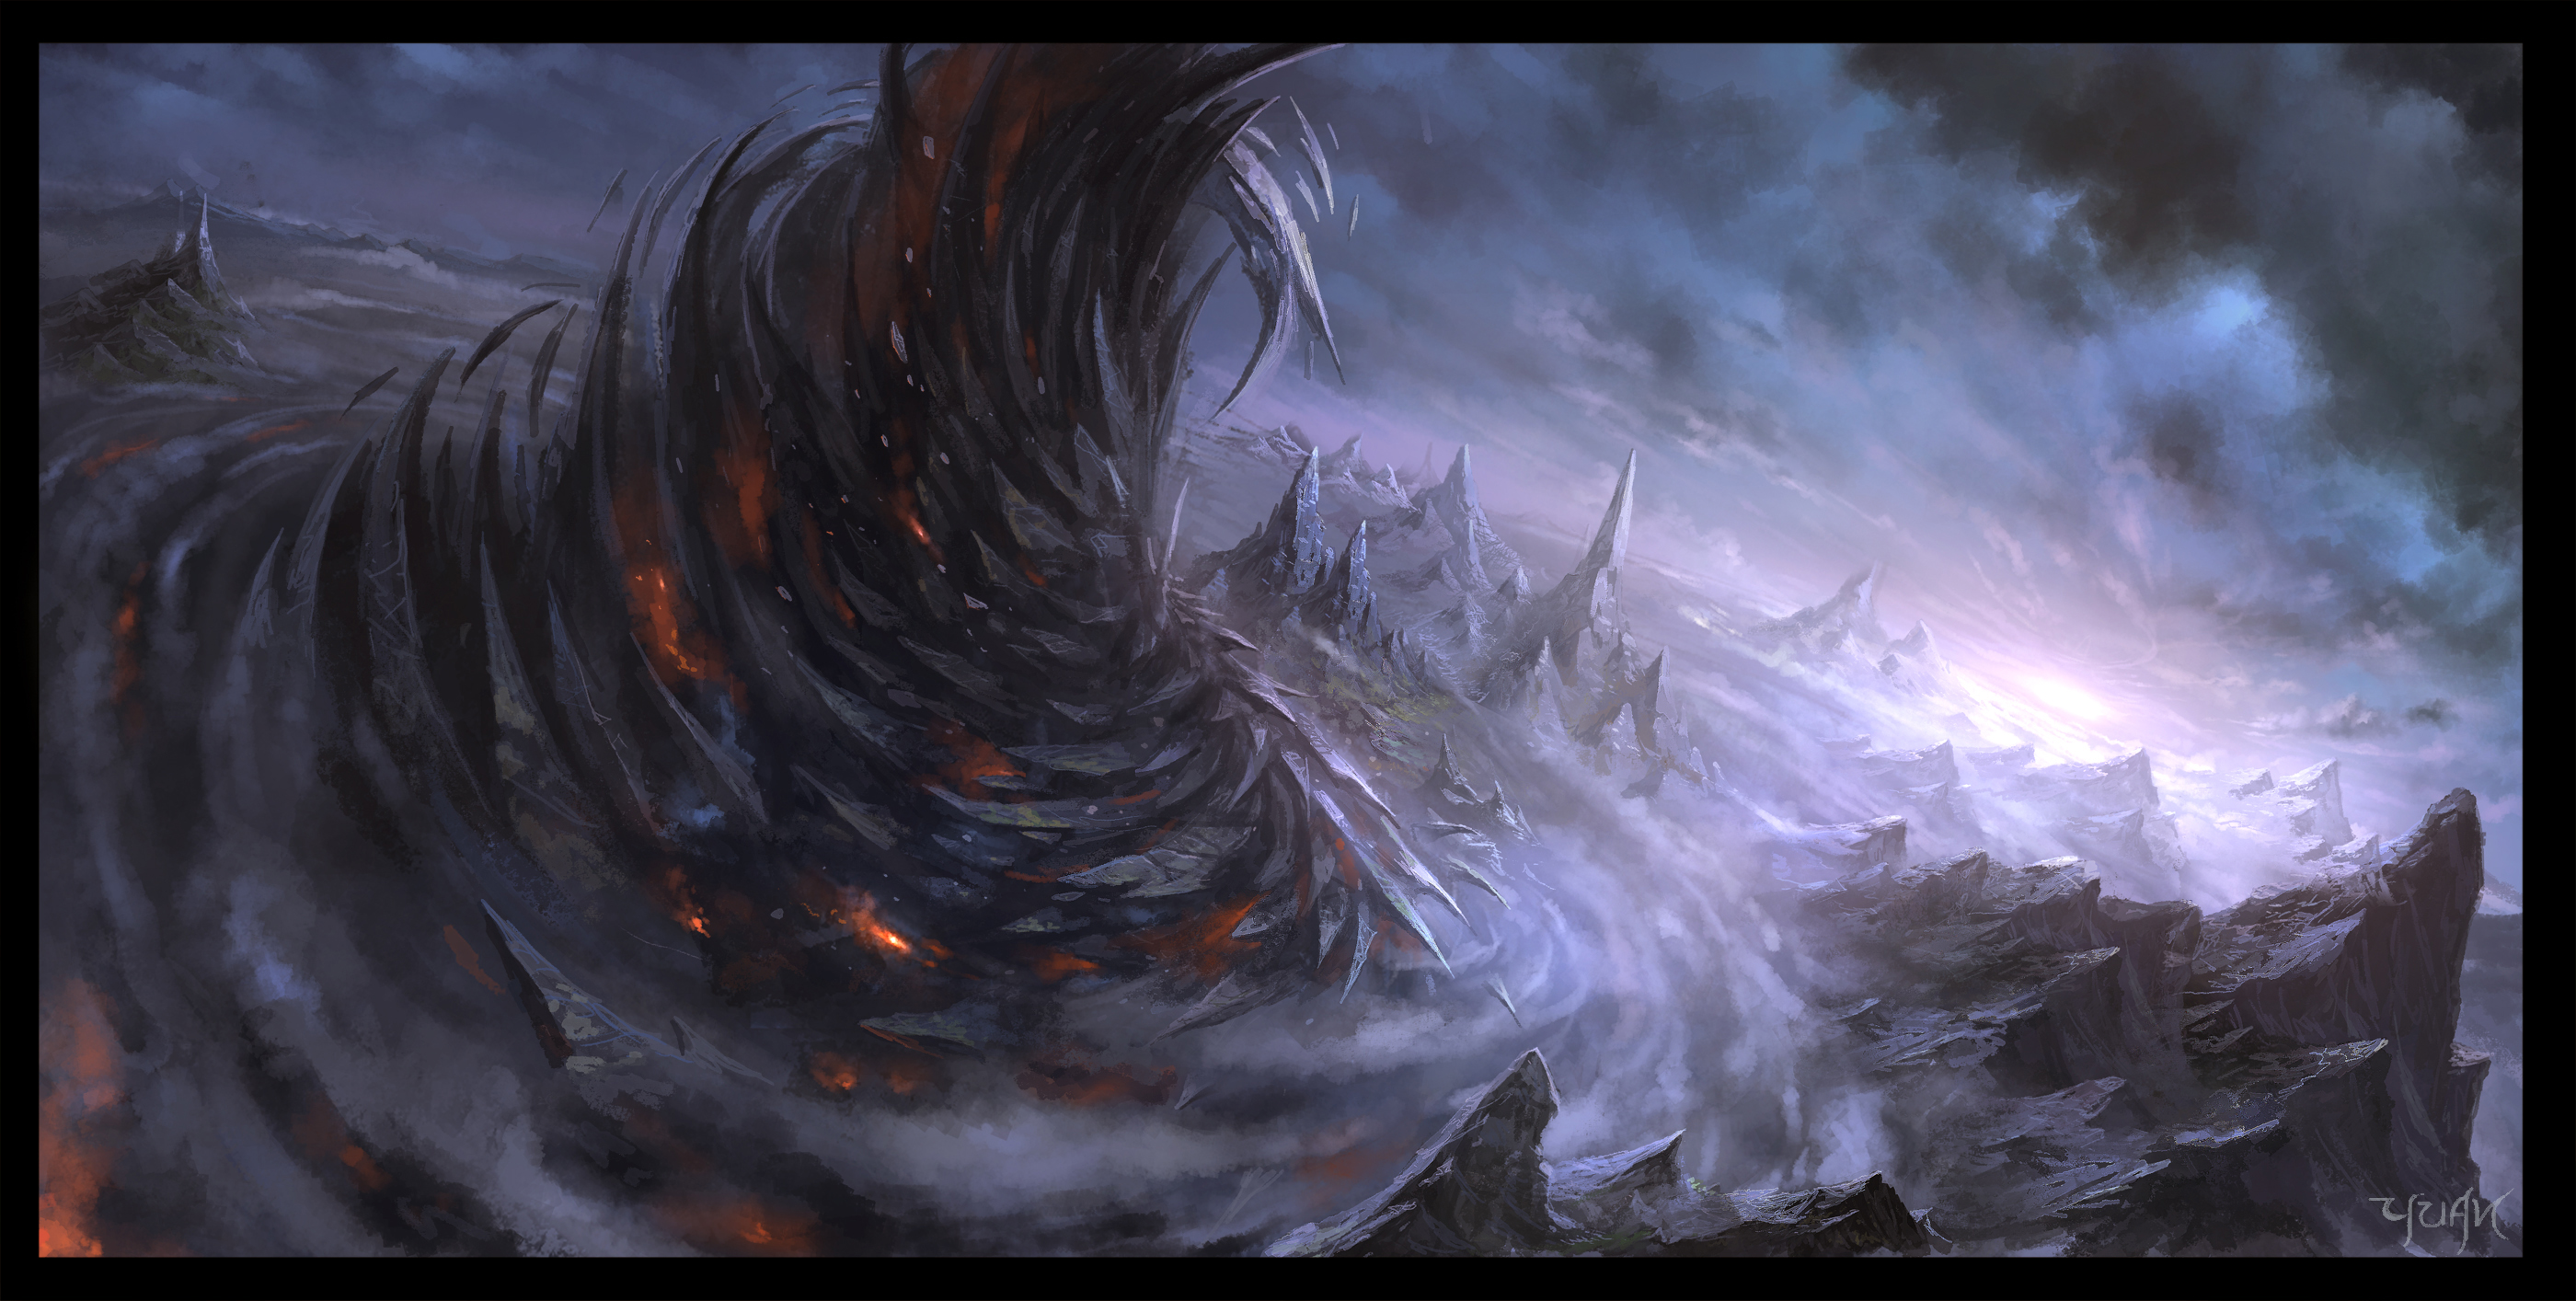 Lair of the Dark Phoenix by ChaoyuanXu